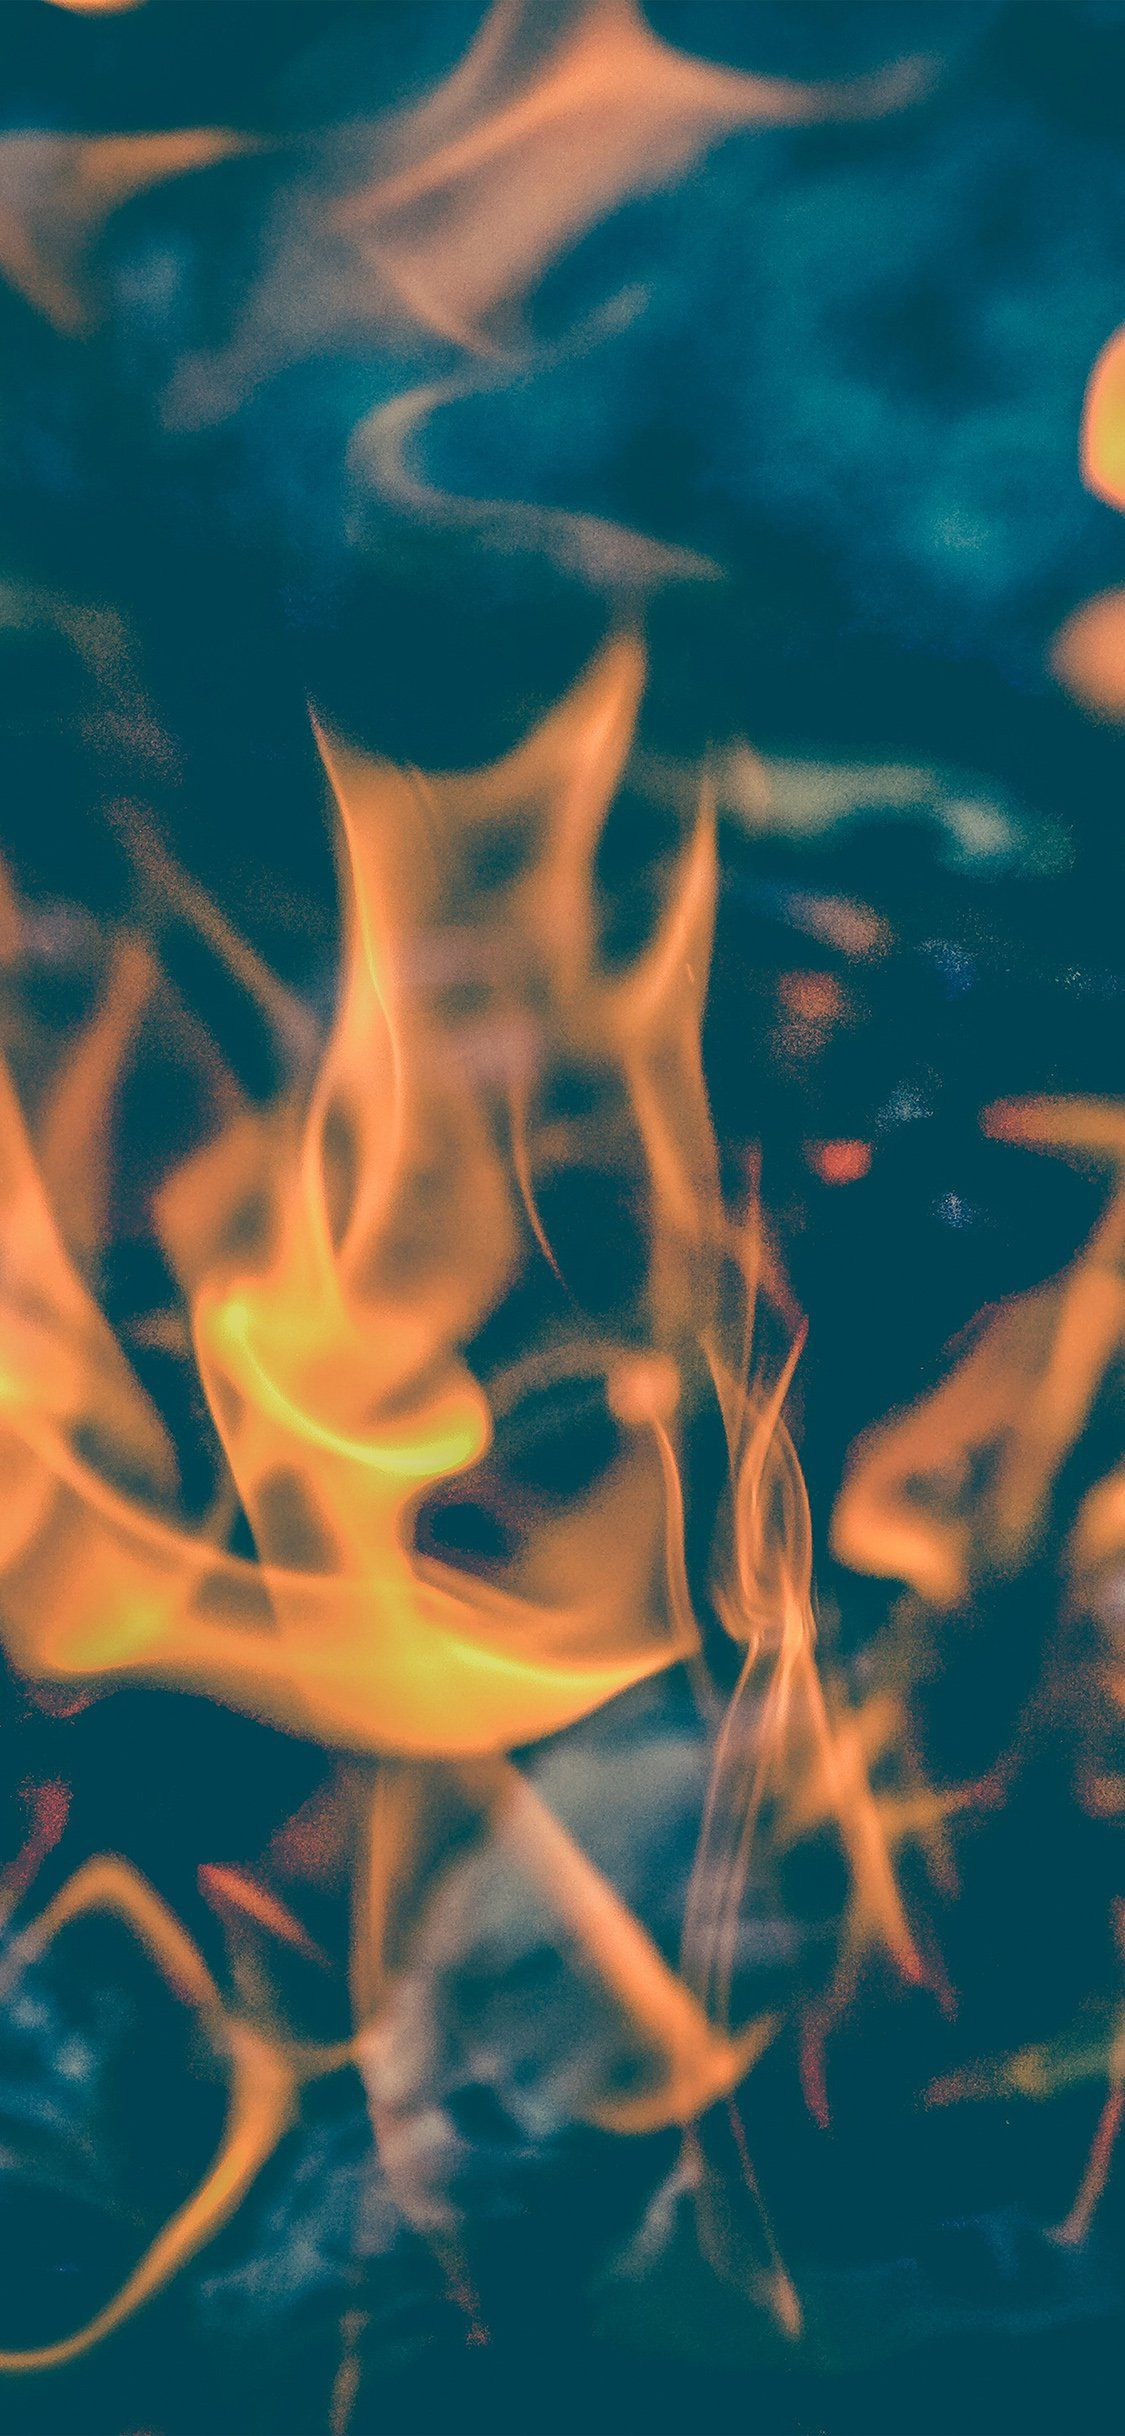 Iphone Fire Wallpapers Top Free Iphone Fire Backgrounds Wallpaperaccess